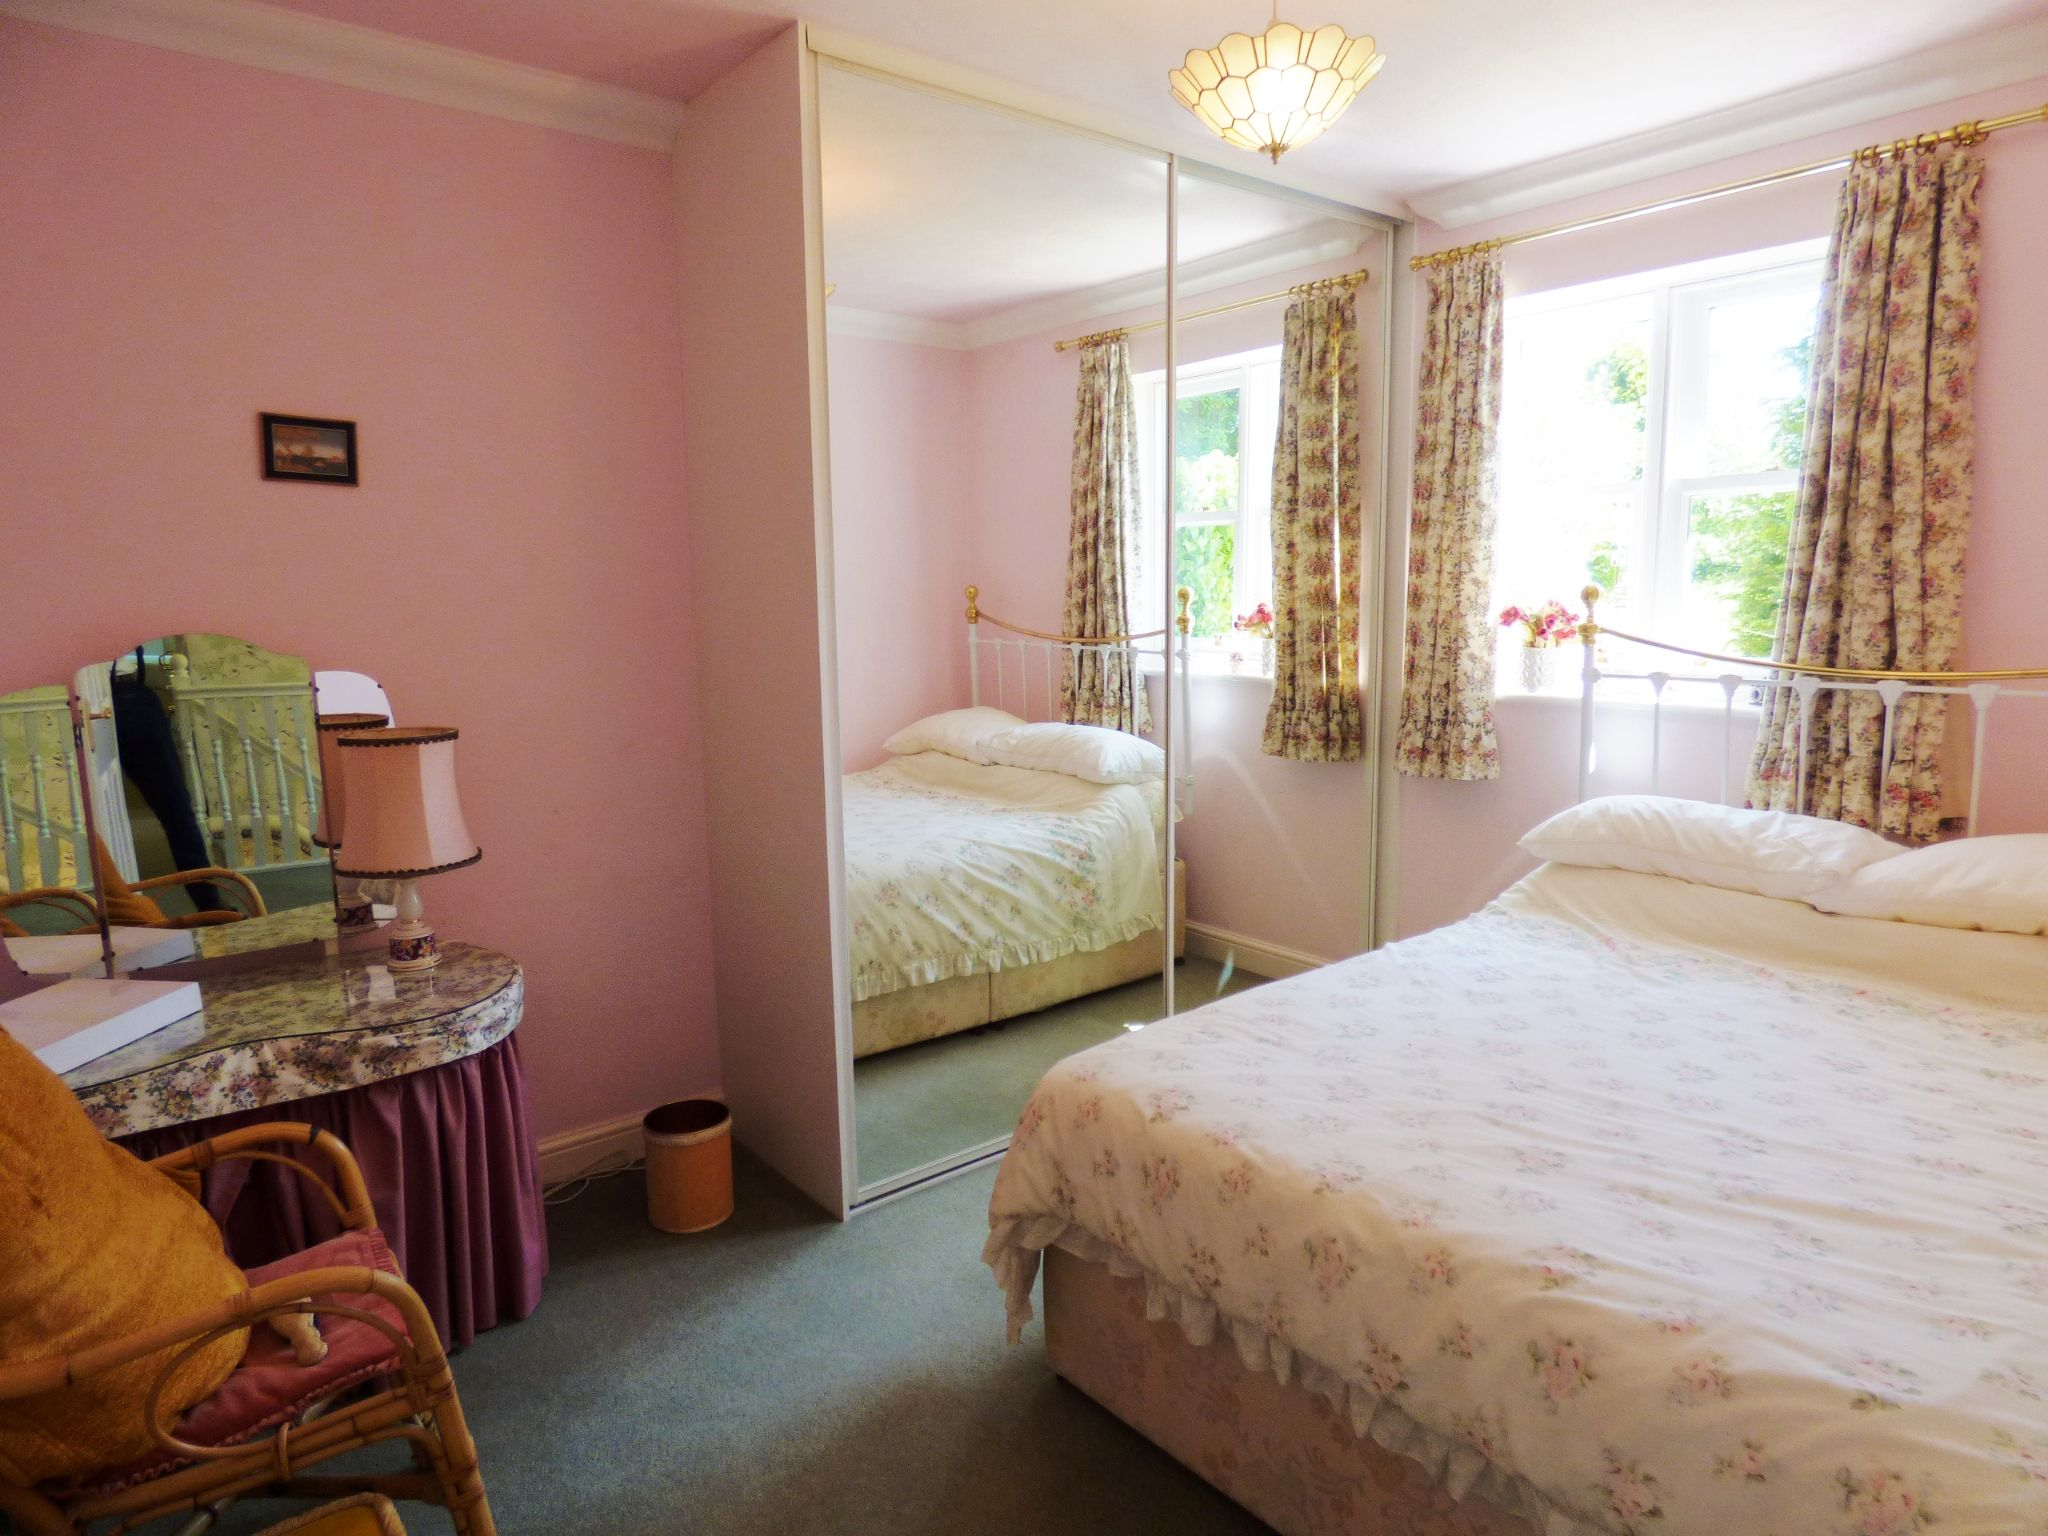 5 Bedroom Mews House For Sale - Photograph 19